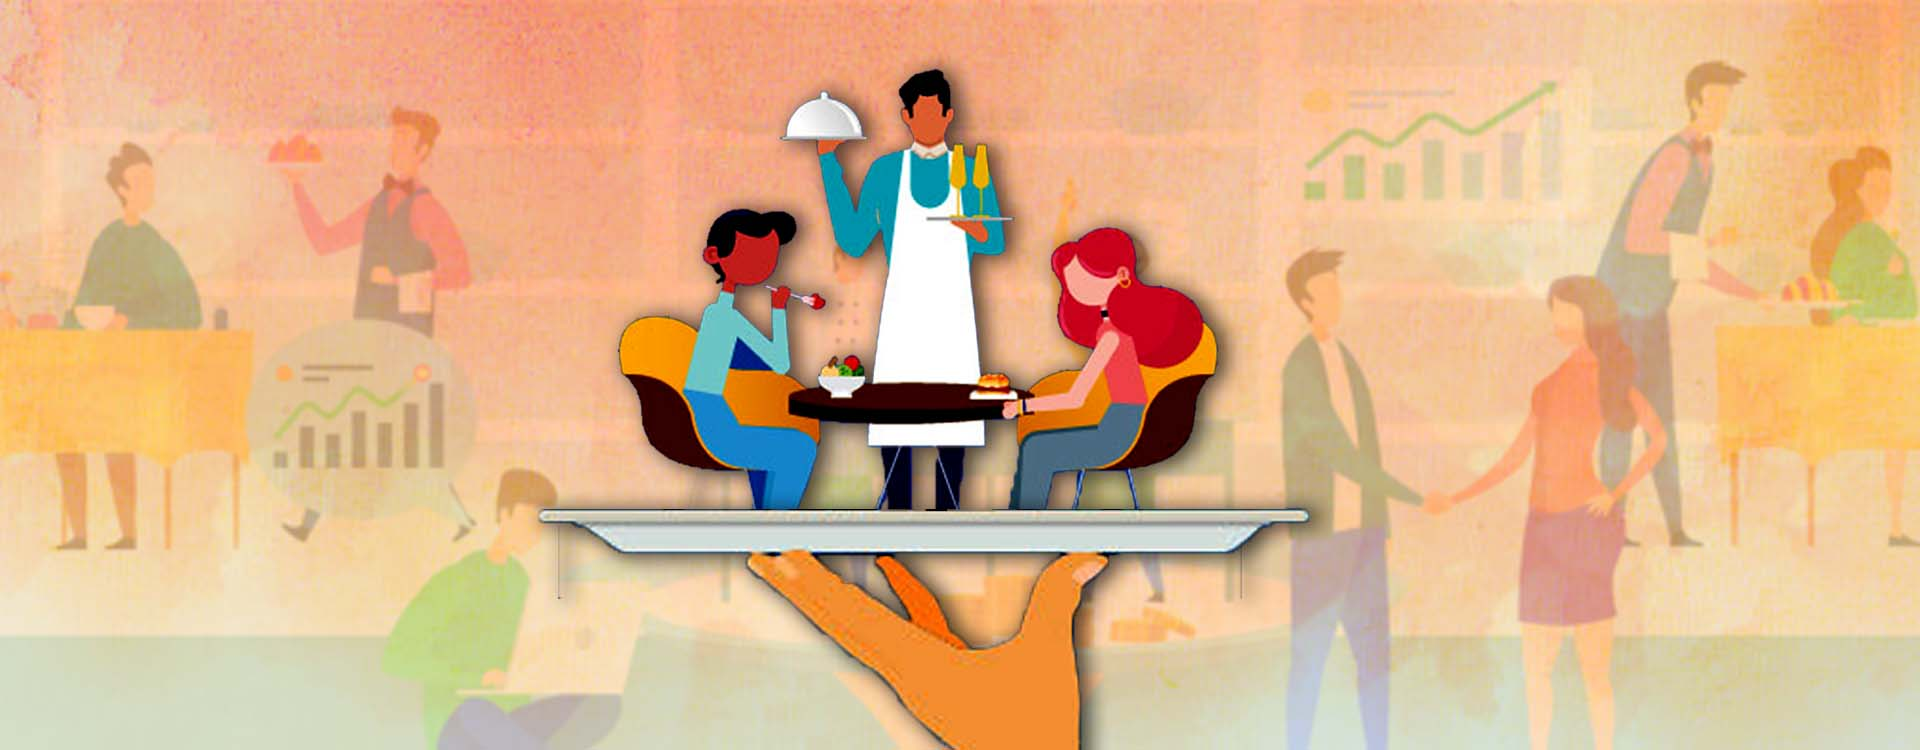 Restaurant and Food Services trends 2021